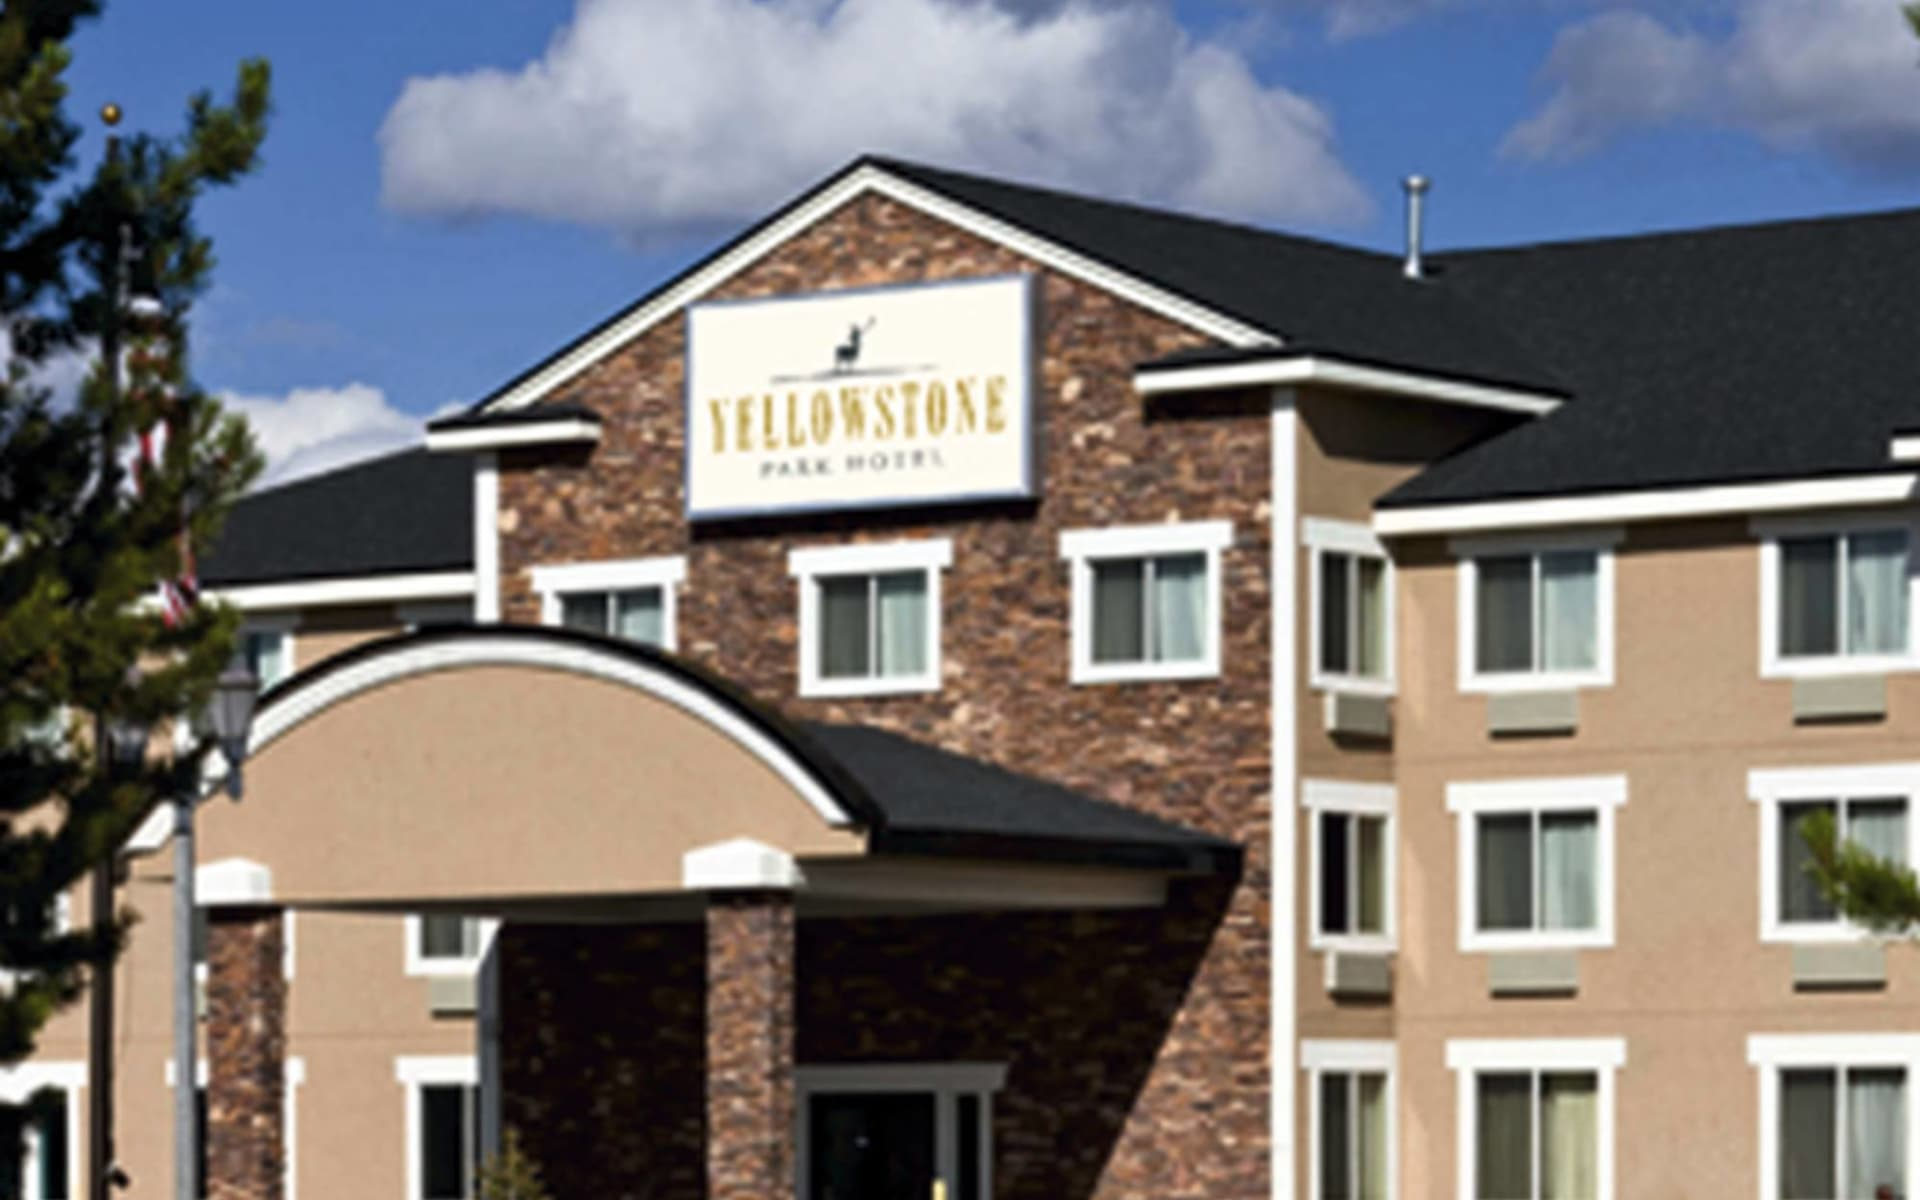 Yellowstone Park Hotel in West Yellowstone: exterior yellowstone park hotel at west yellowstone hotelgebäude